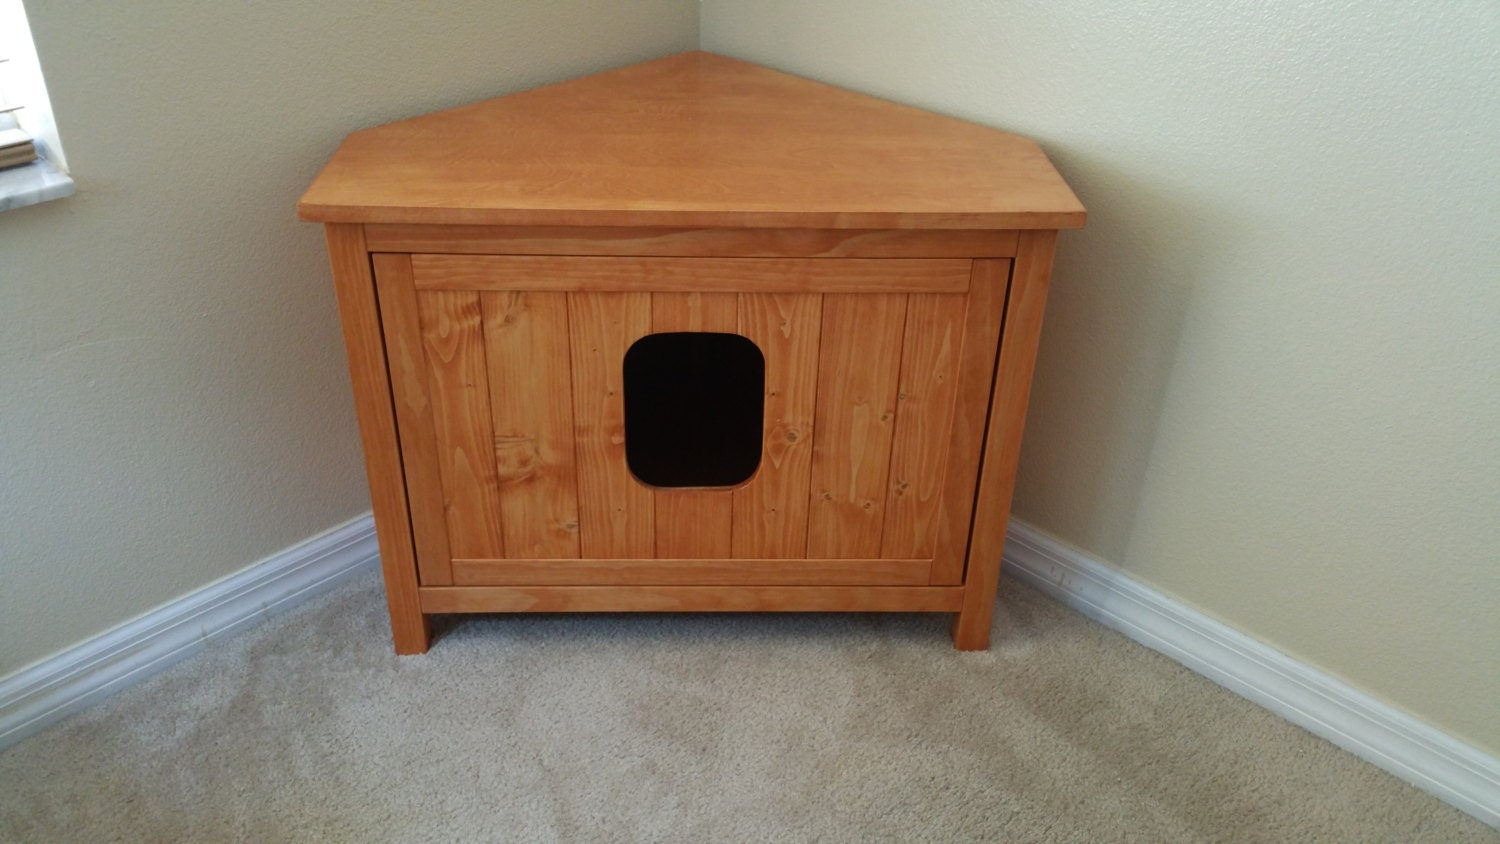 Enclosed cat litter box wood